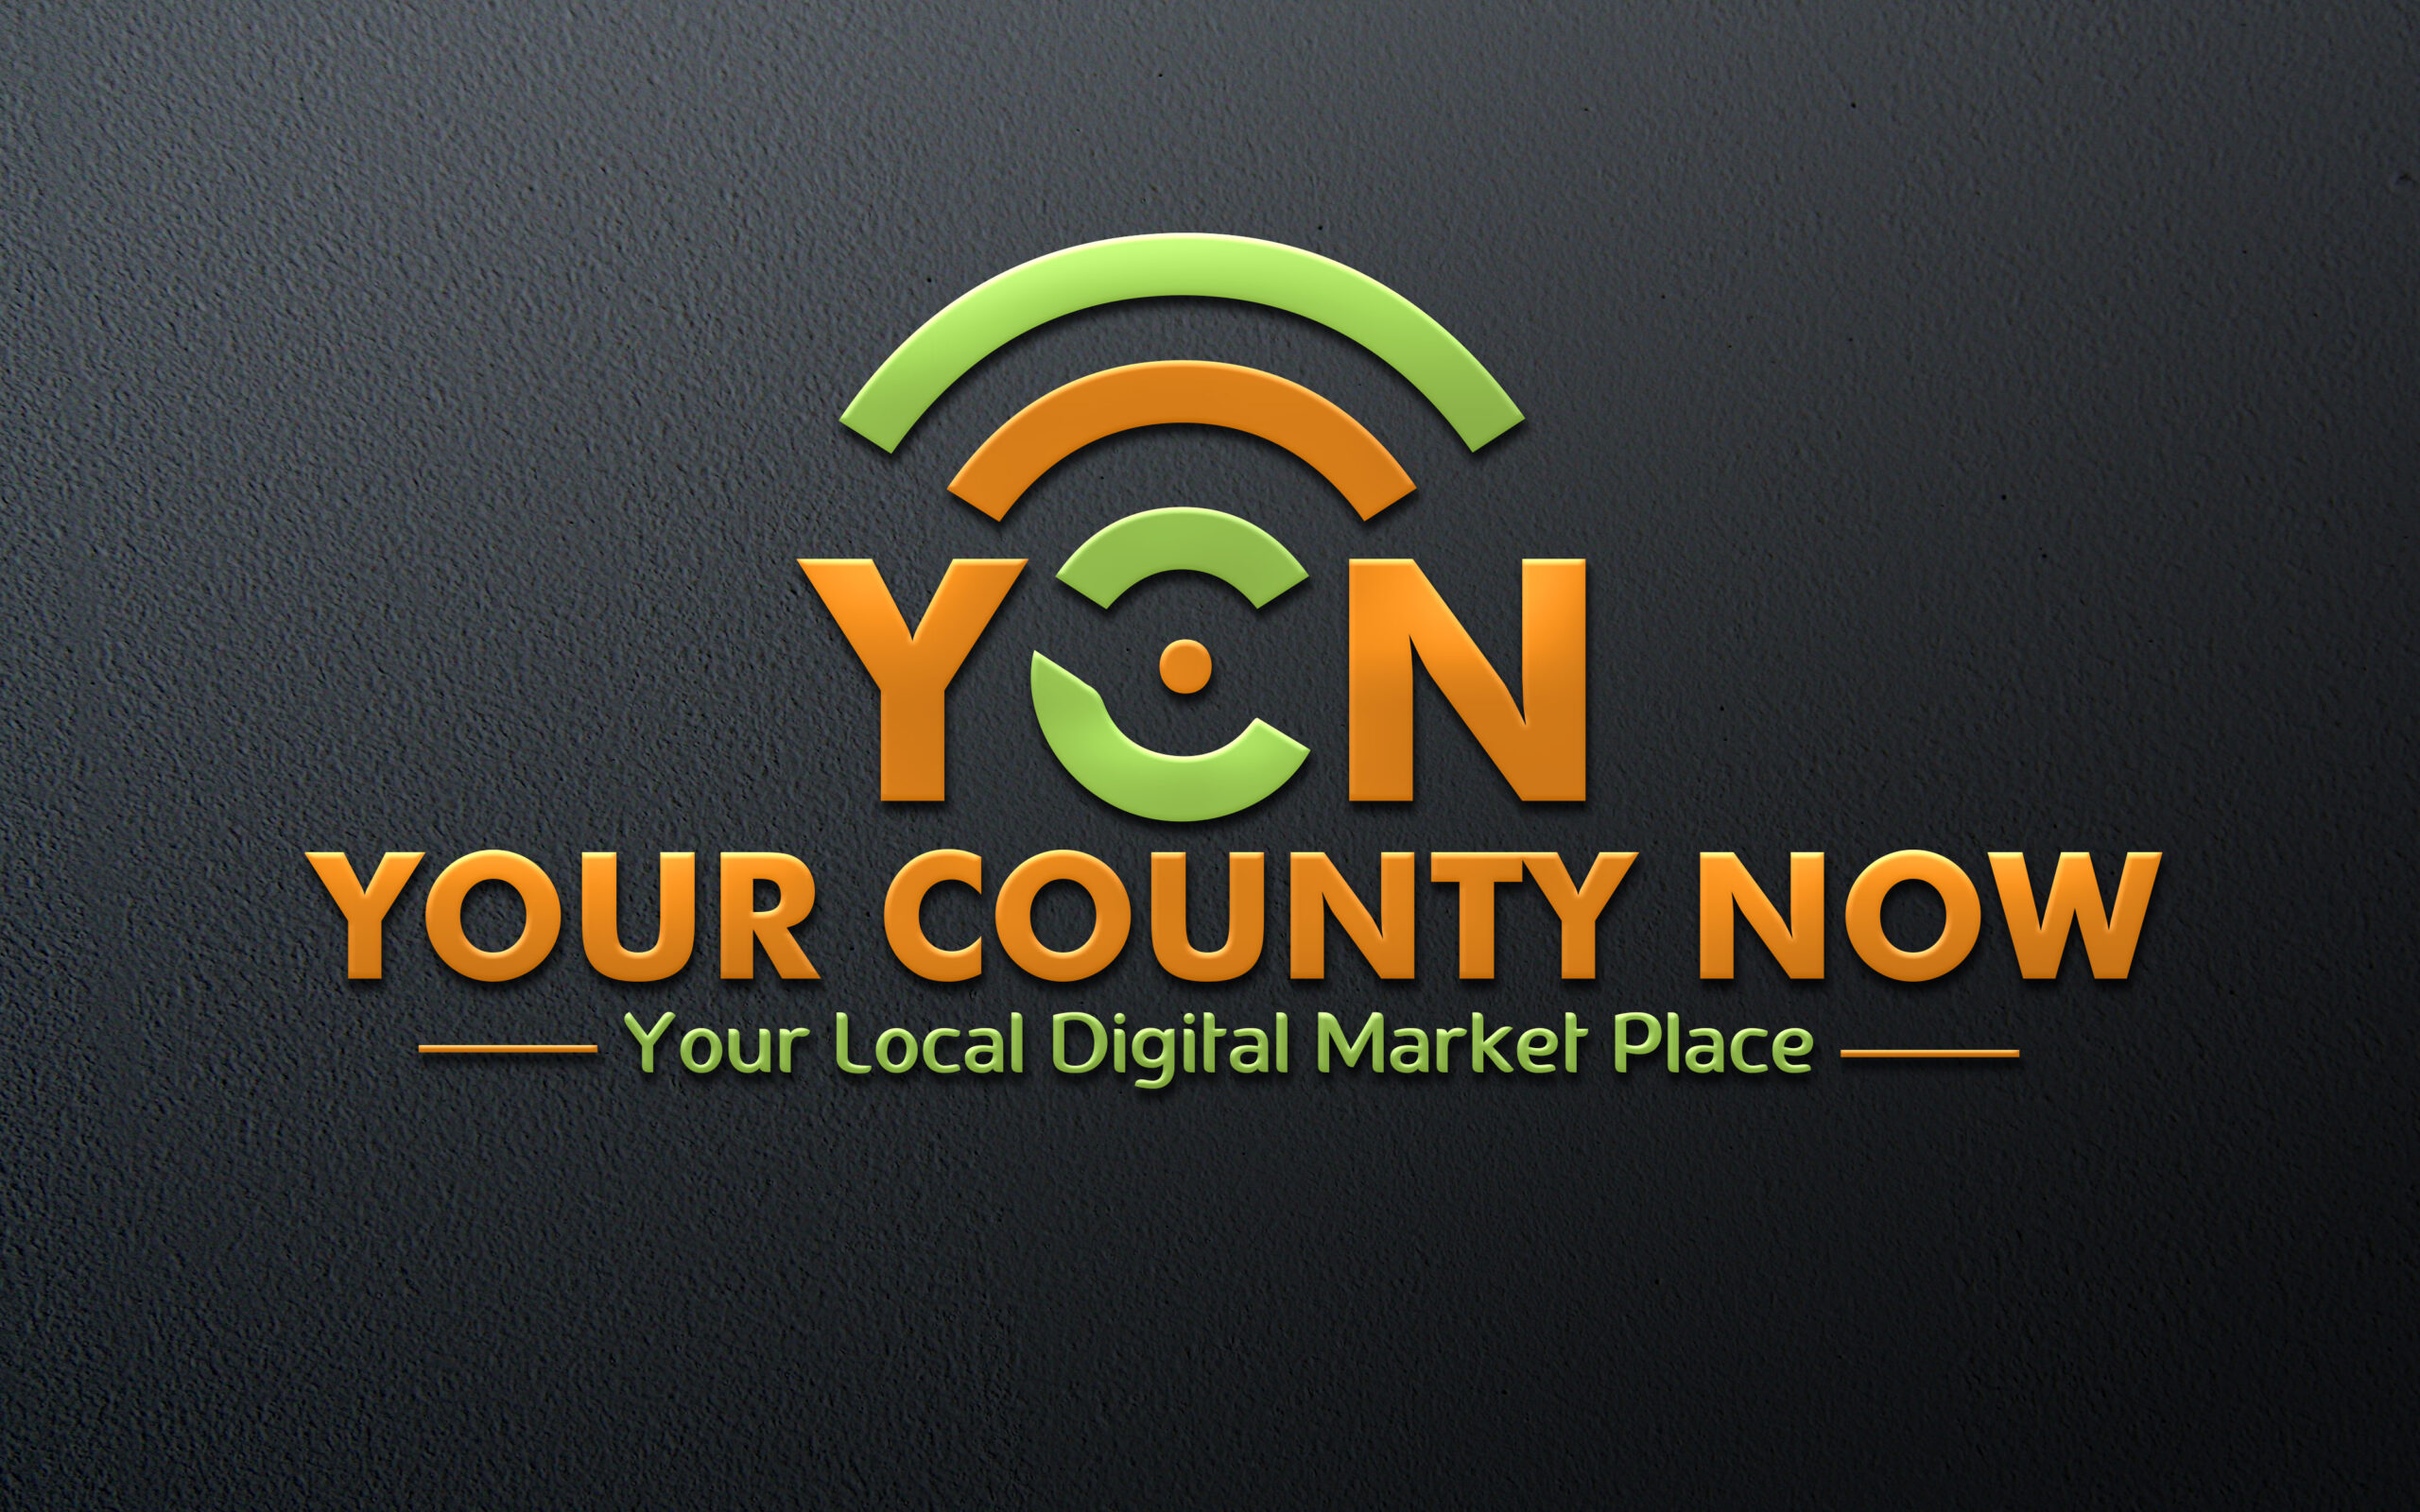 Your County Now